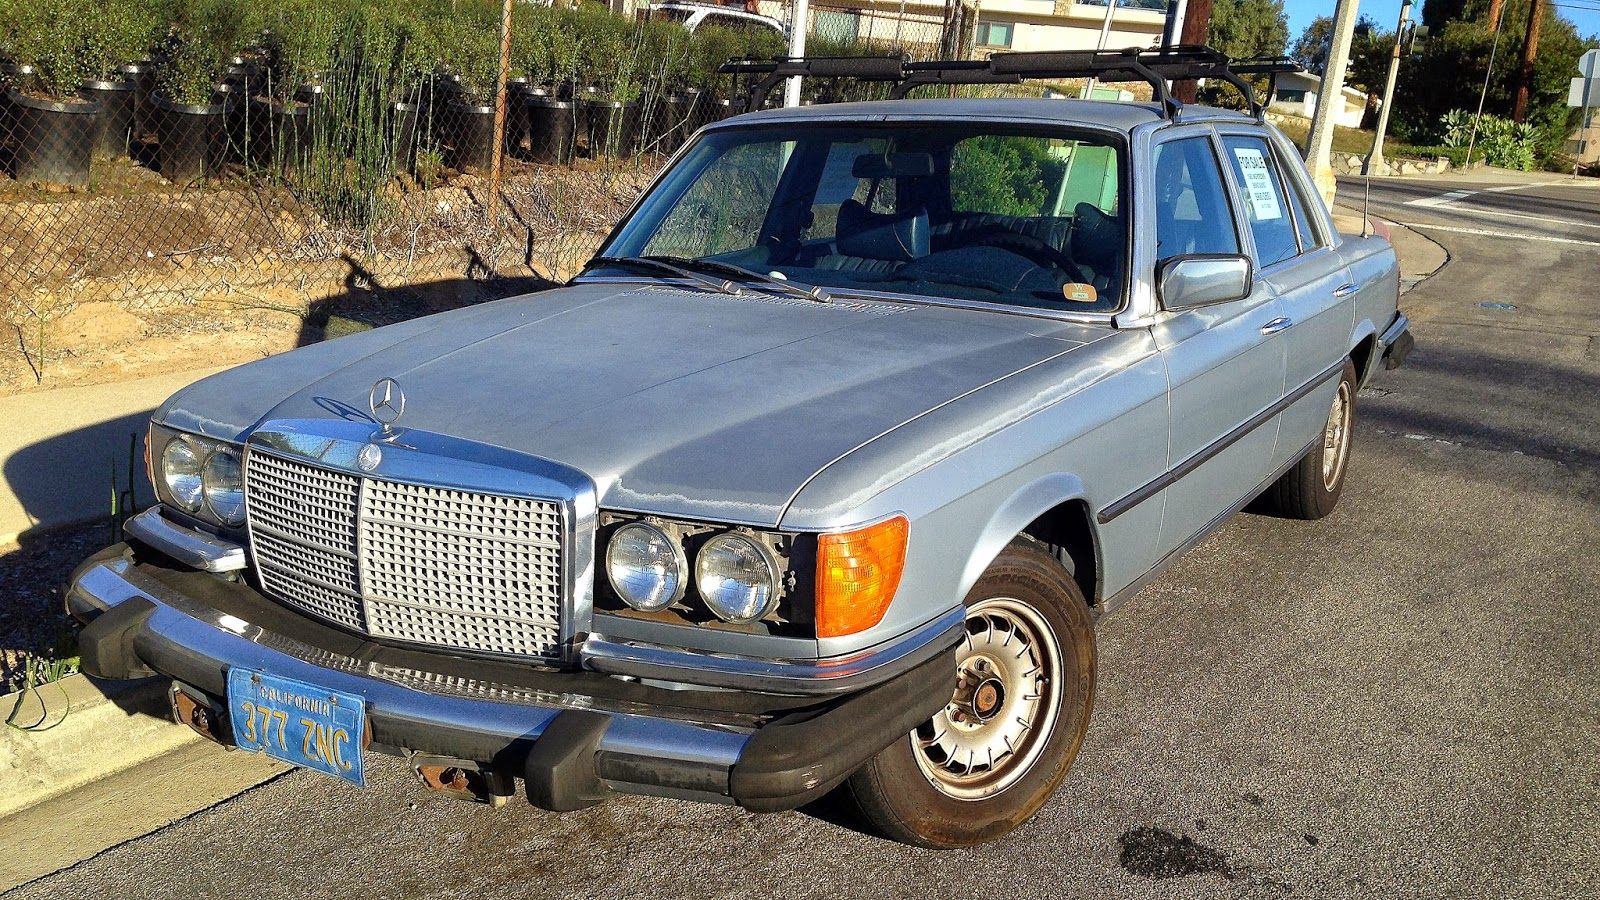 Daily turismo 1k roadkill 1980 mercedes benz 300sd w116 for 1980 mercedes benz 300sd